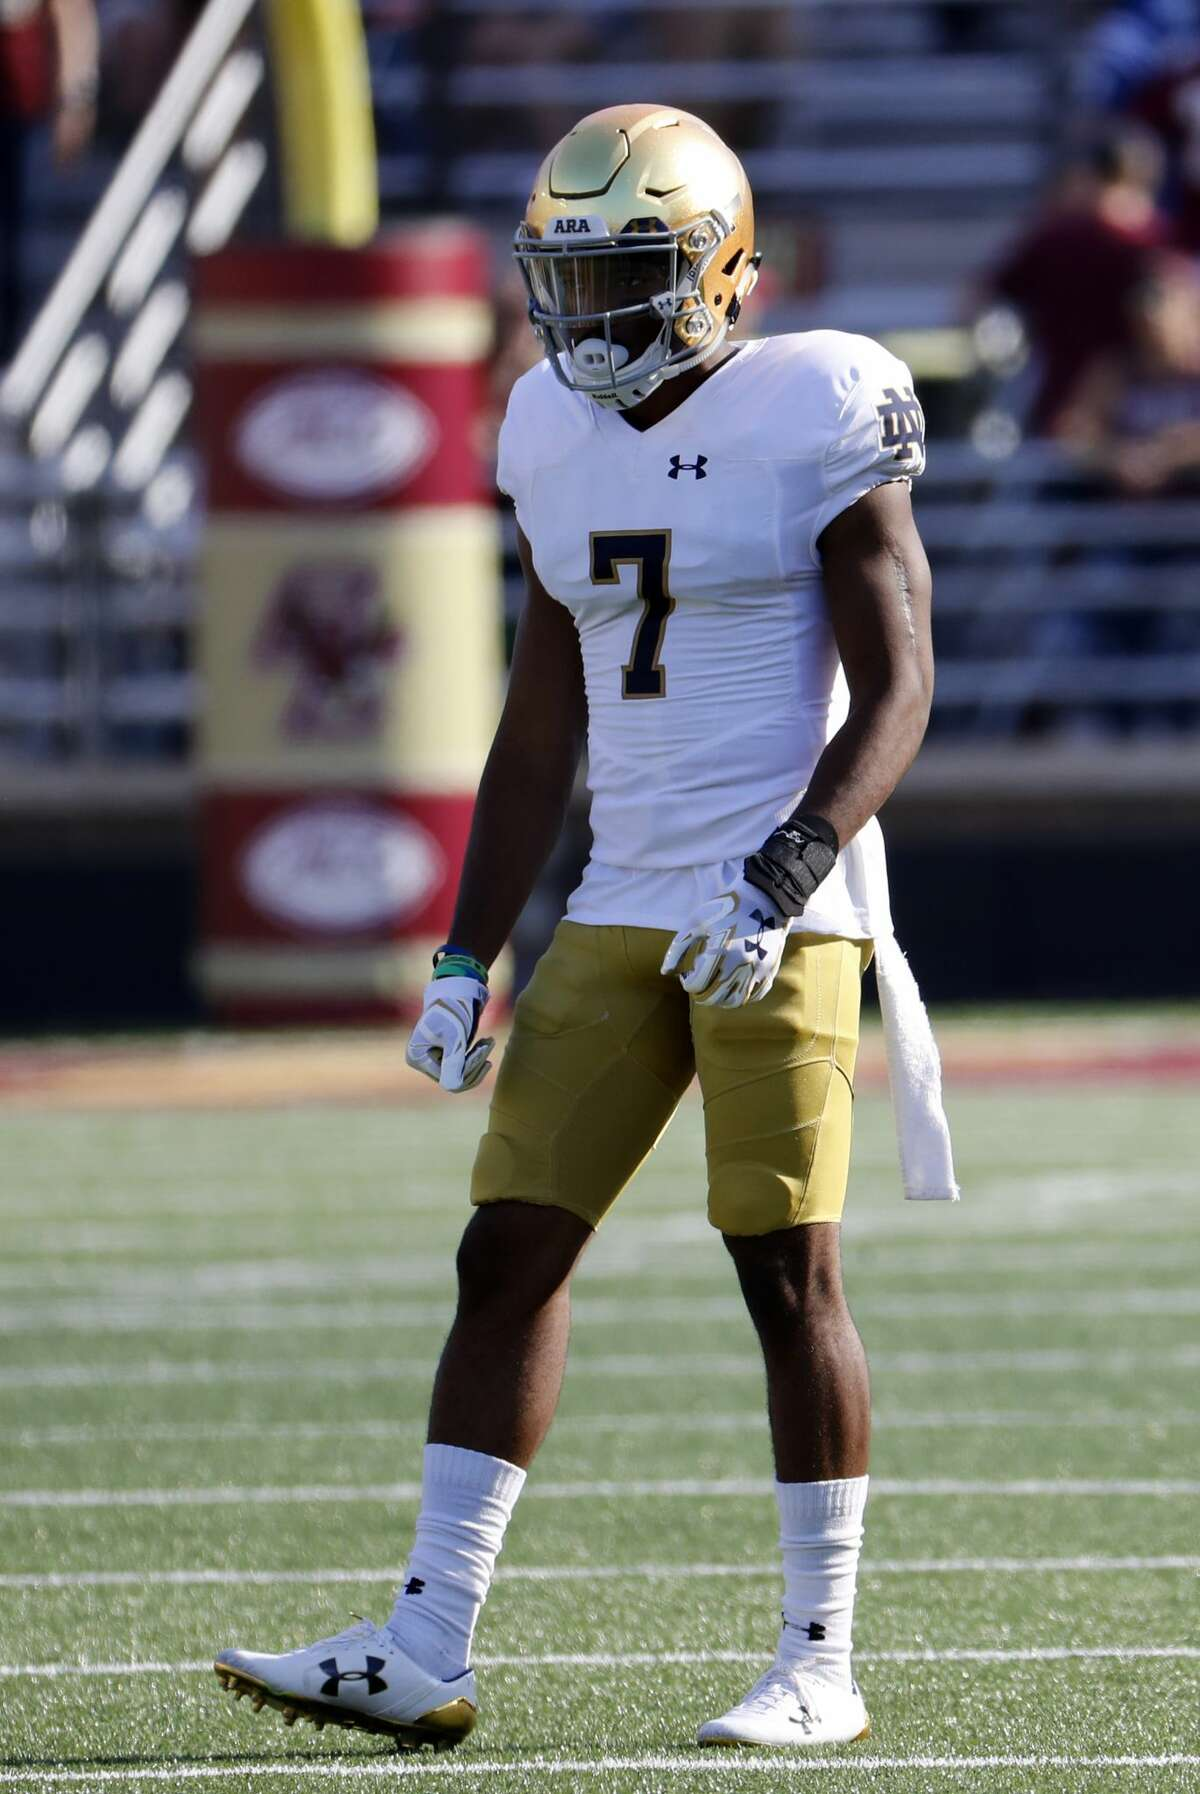 CHESTNUT HILL, MA - SEPTEMBER 16: Notre Dame cornerback Nick Watkins (7) during a game between the Boston College Eagles and the Notre Dame Fighting Irish on September 16, 2017, at Alumni Stadium in Chestnut Hill, Massachusetts. (Photo by Fred Kfoury III/Icon Sportswire via Getty Images)